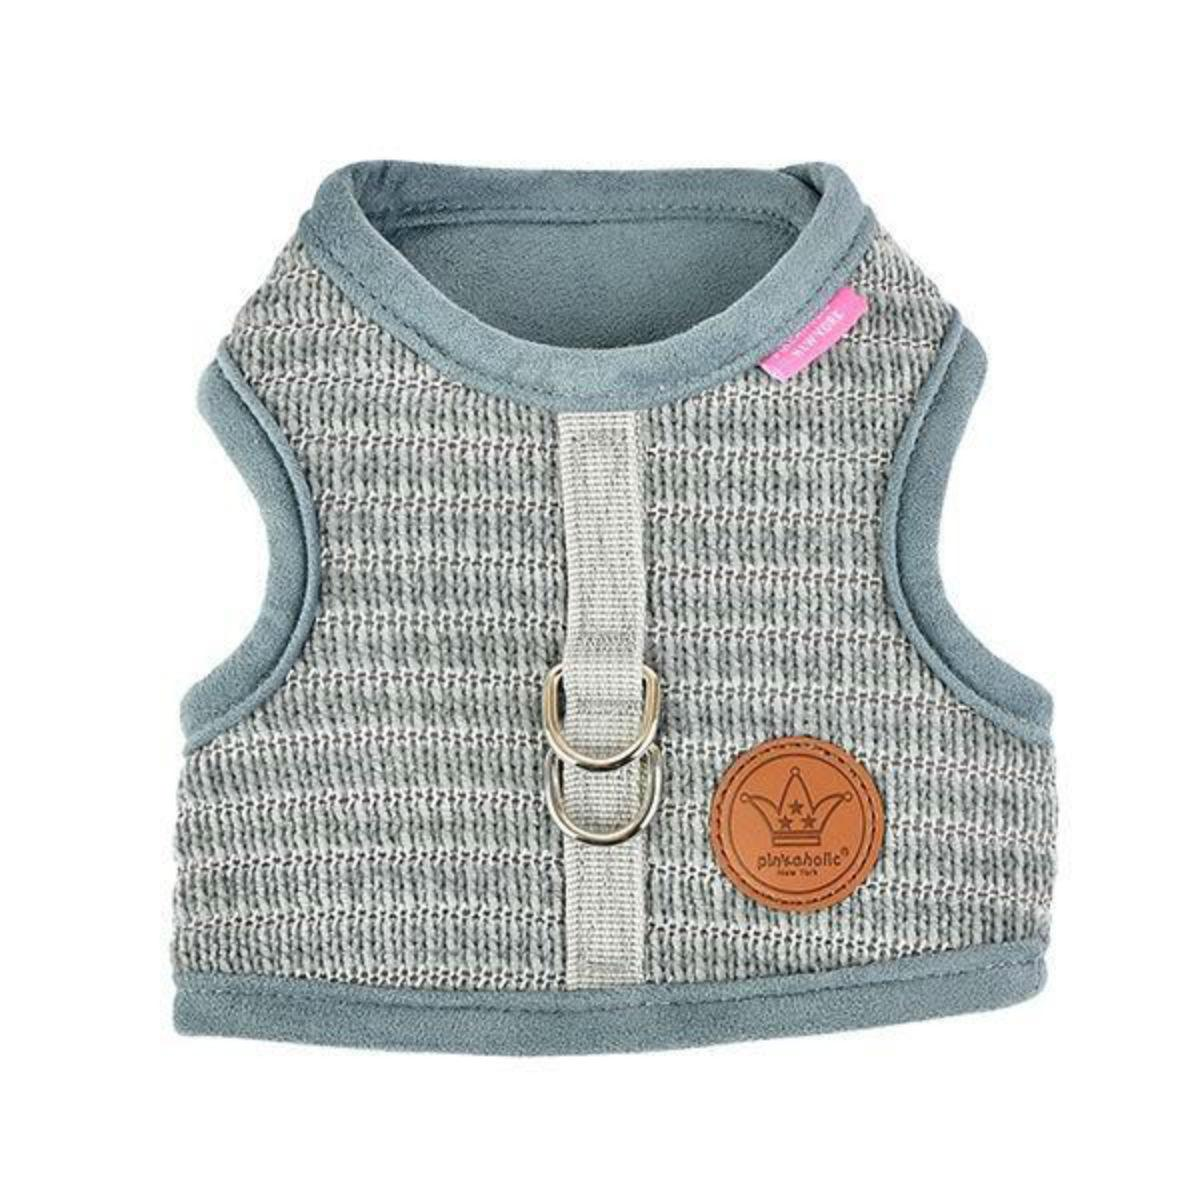 Elicia Pinka Dog Harness by Pinkaholic - Grey